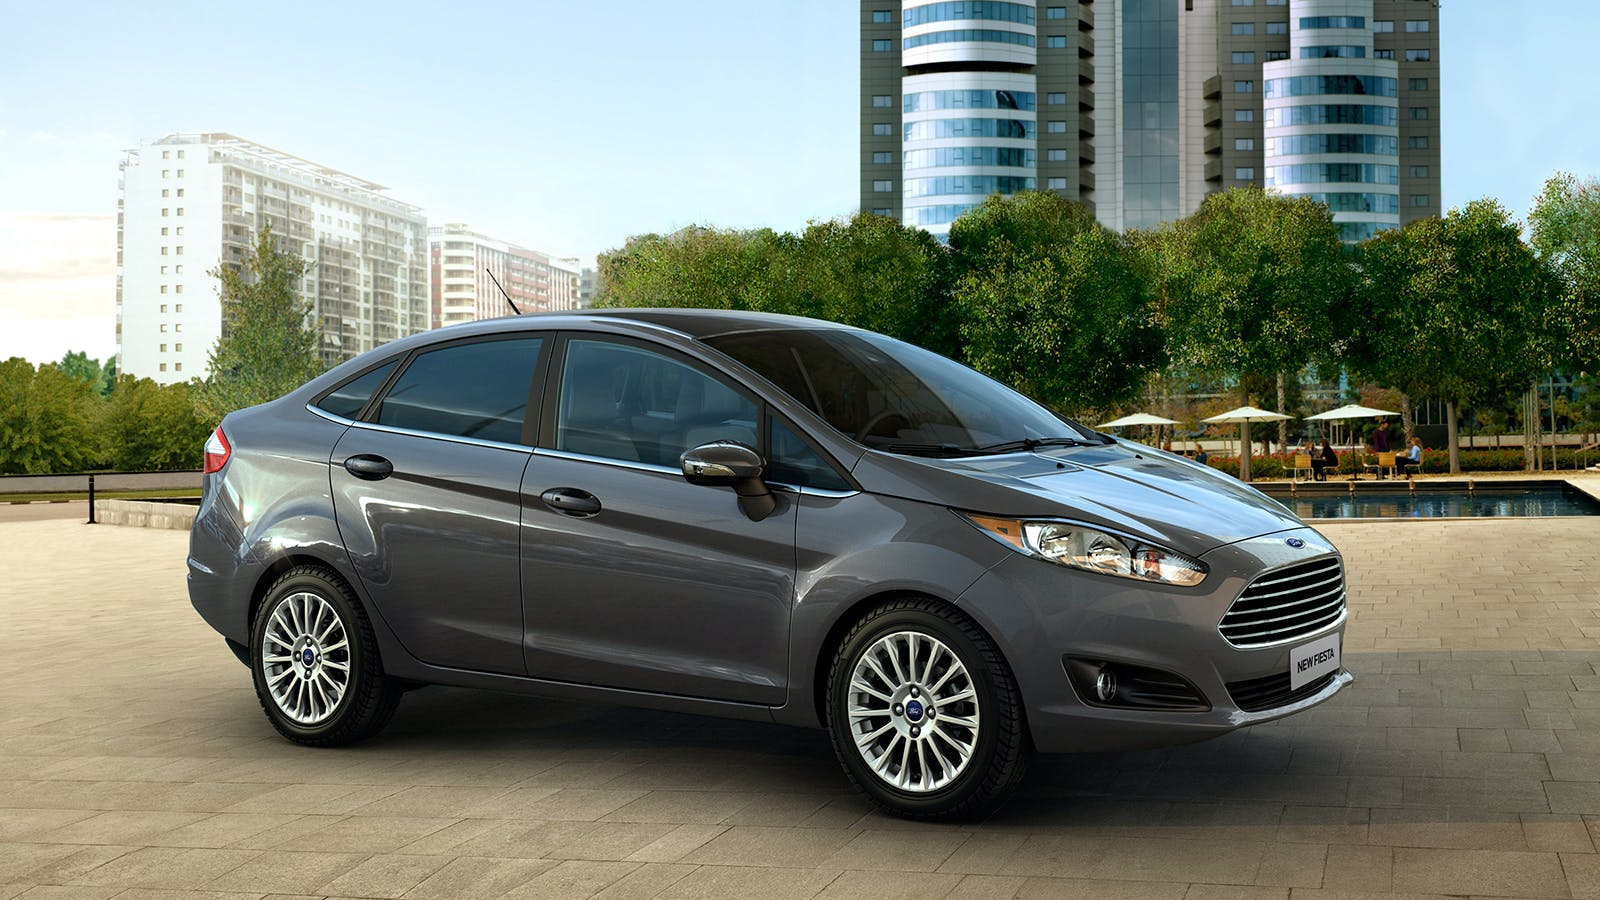 Ford New Fiesta Sedan - Thumb